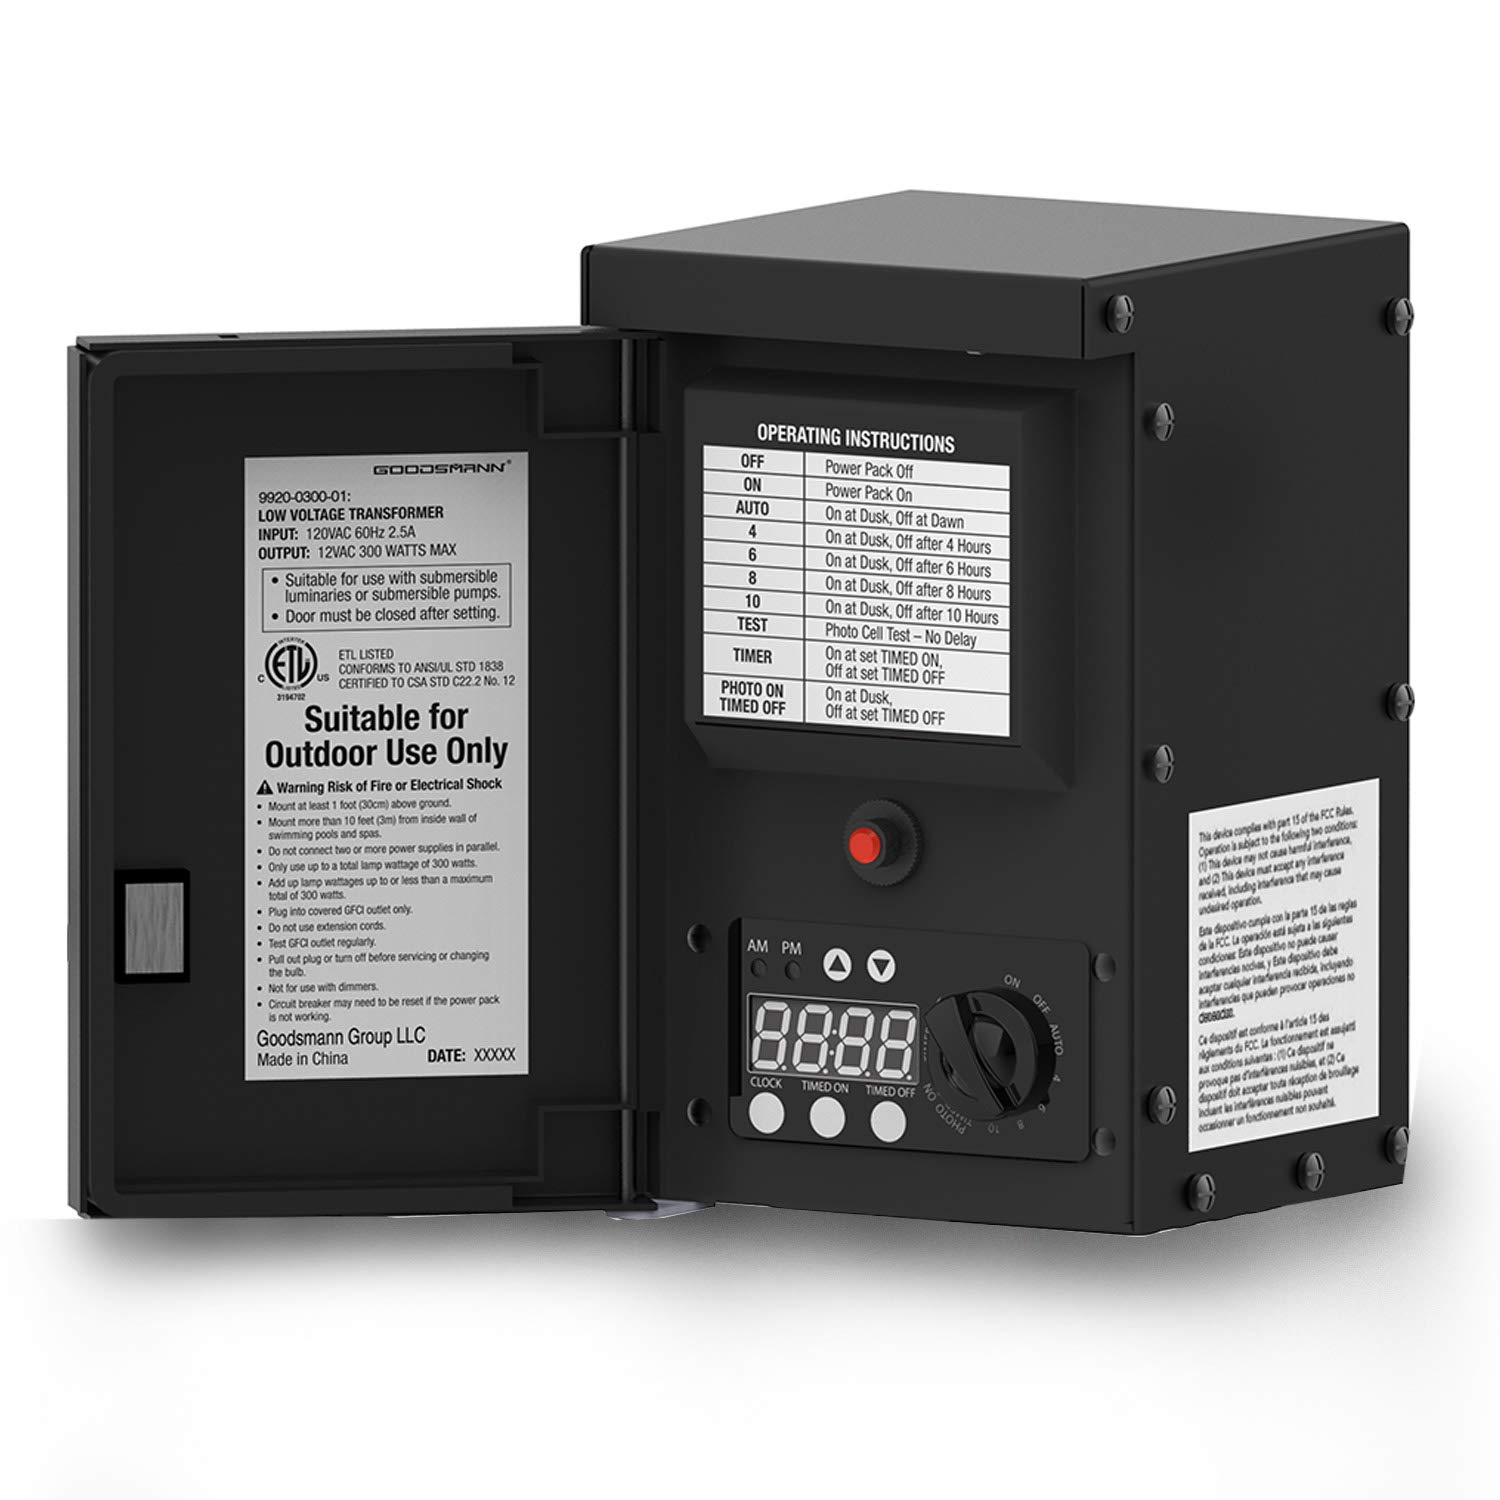 GOODSMANN 300 Watt Power Pack with Sensor and Weather Shield for Low Voltage Landscape Lighting and Spotlight Outdoor Transformer 120V Input 12V Output Compatible with Malibu Products 9920-0300-01